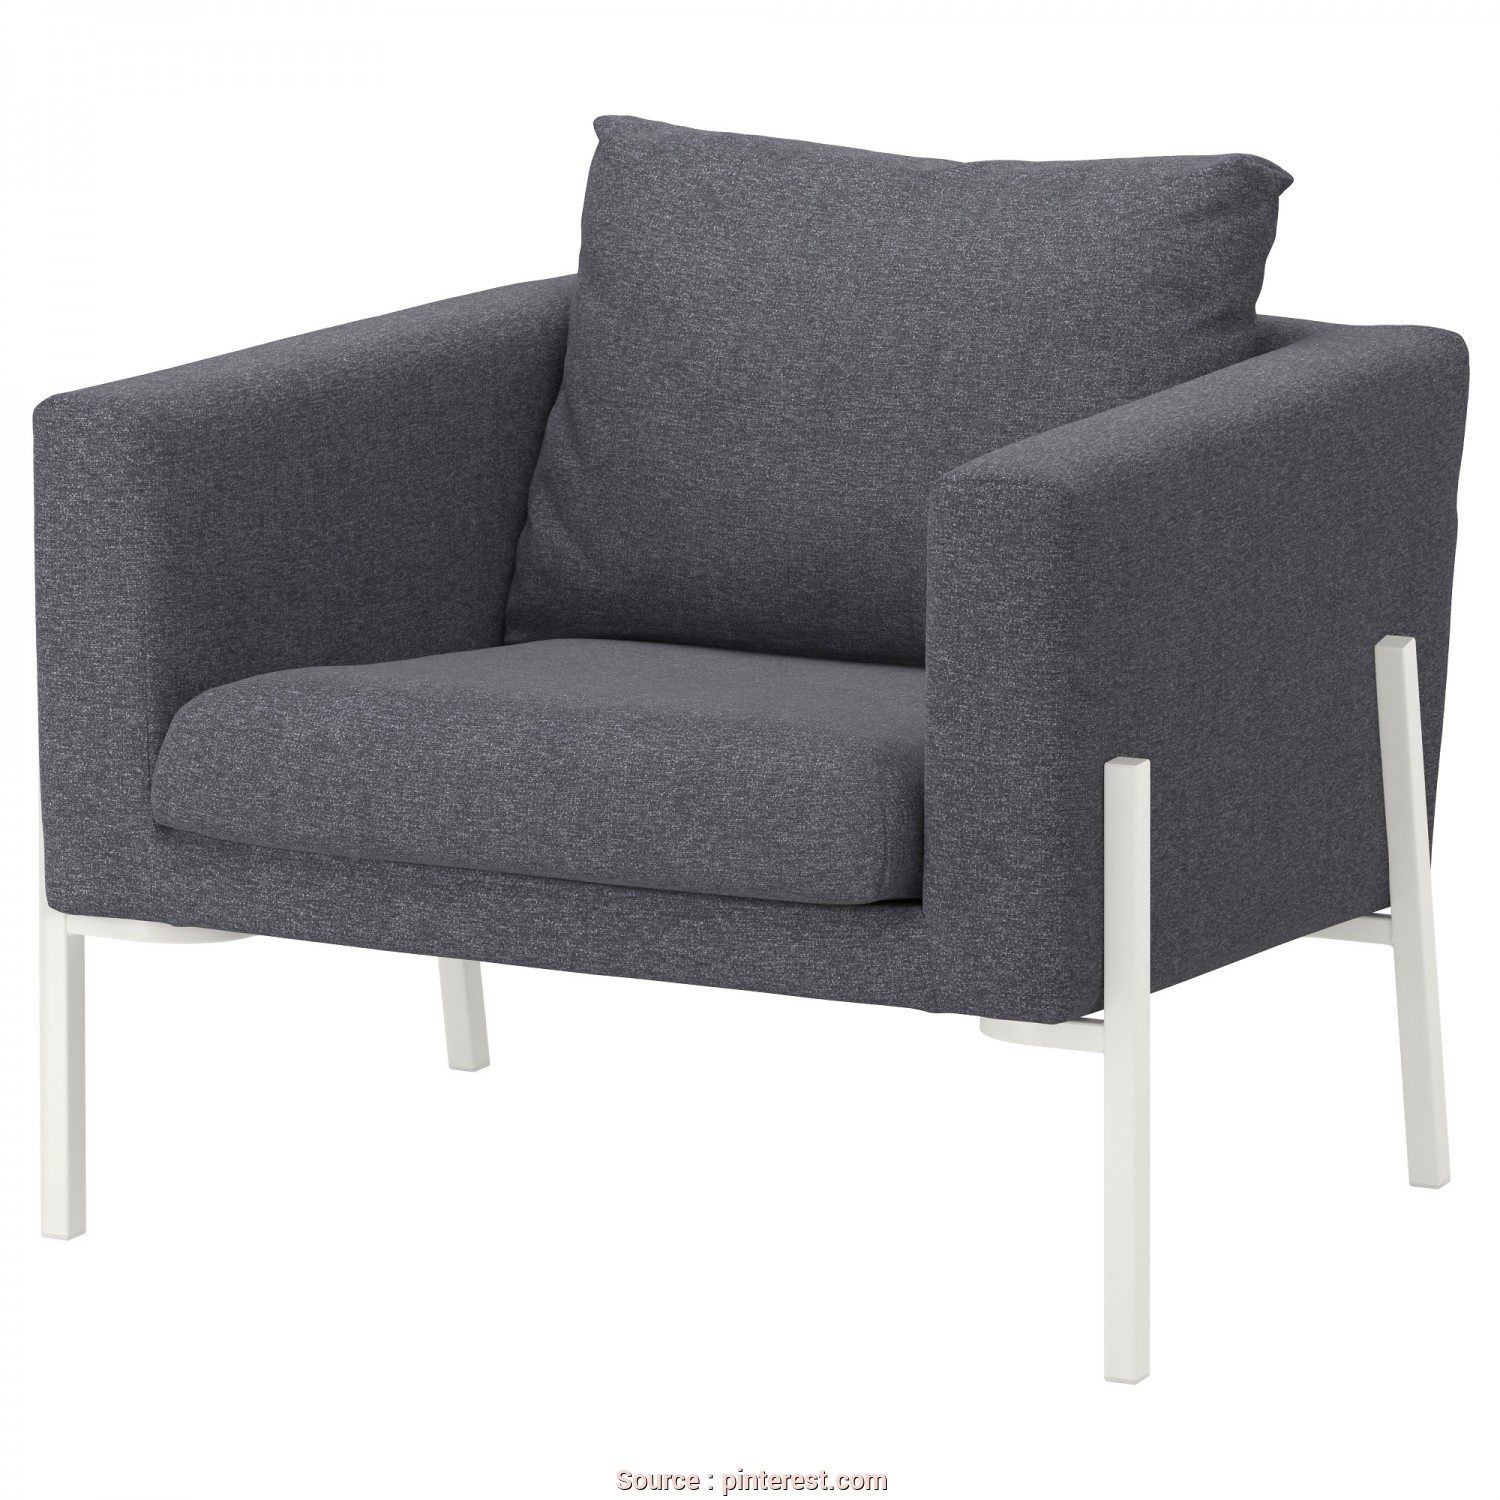 Vilasund Canapea Ikea, Esotico IKEA, KOARP Armchair Cover Gunnared Medium Gray, Products